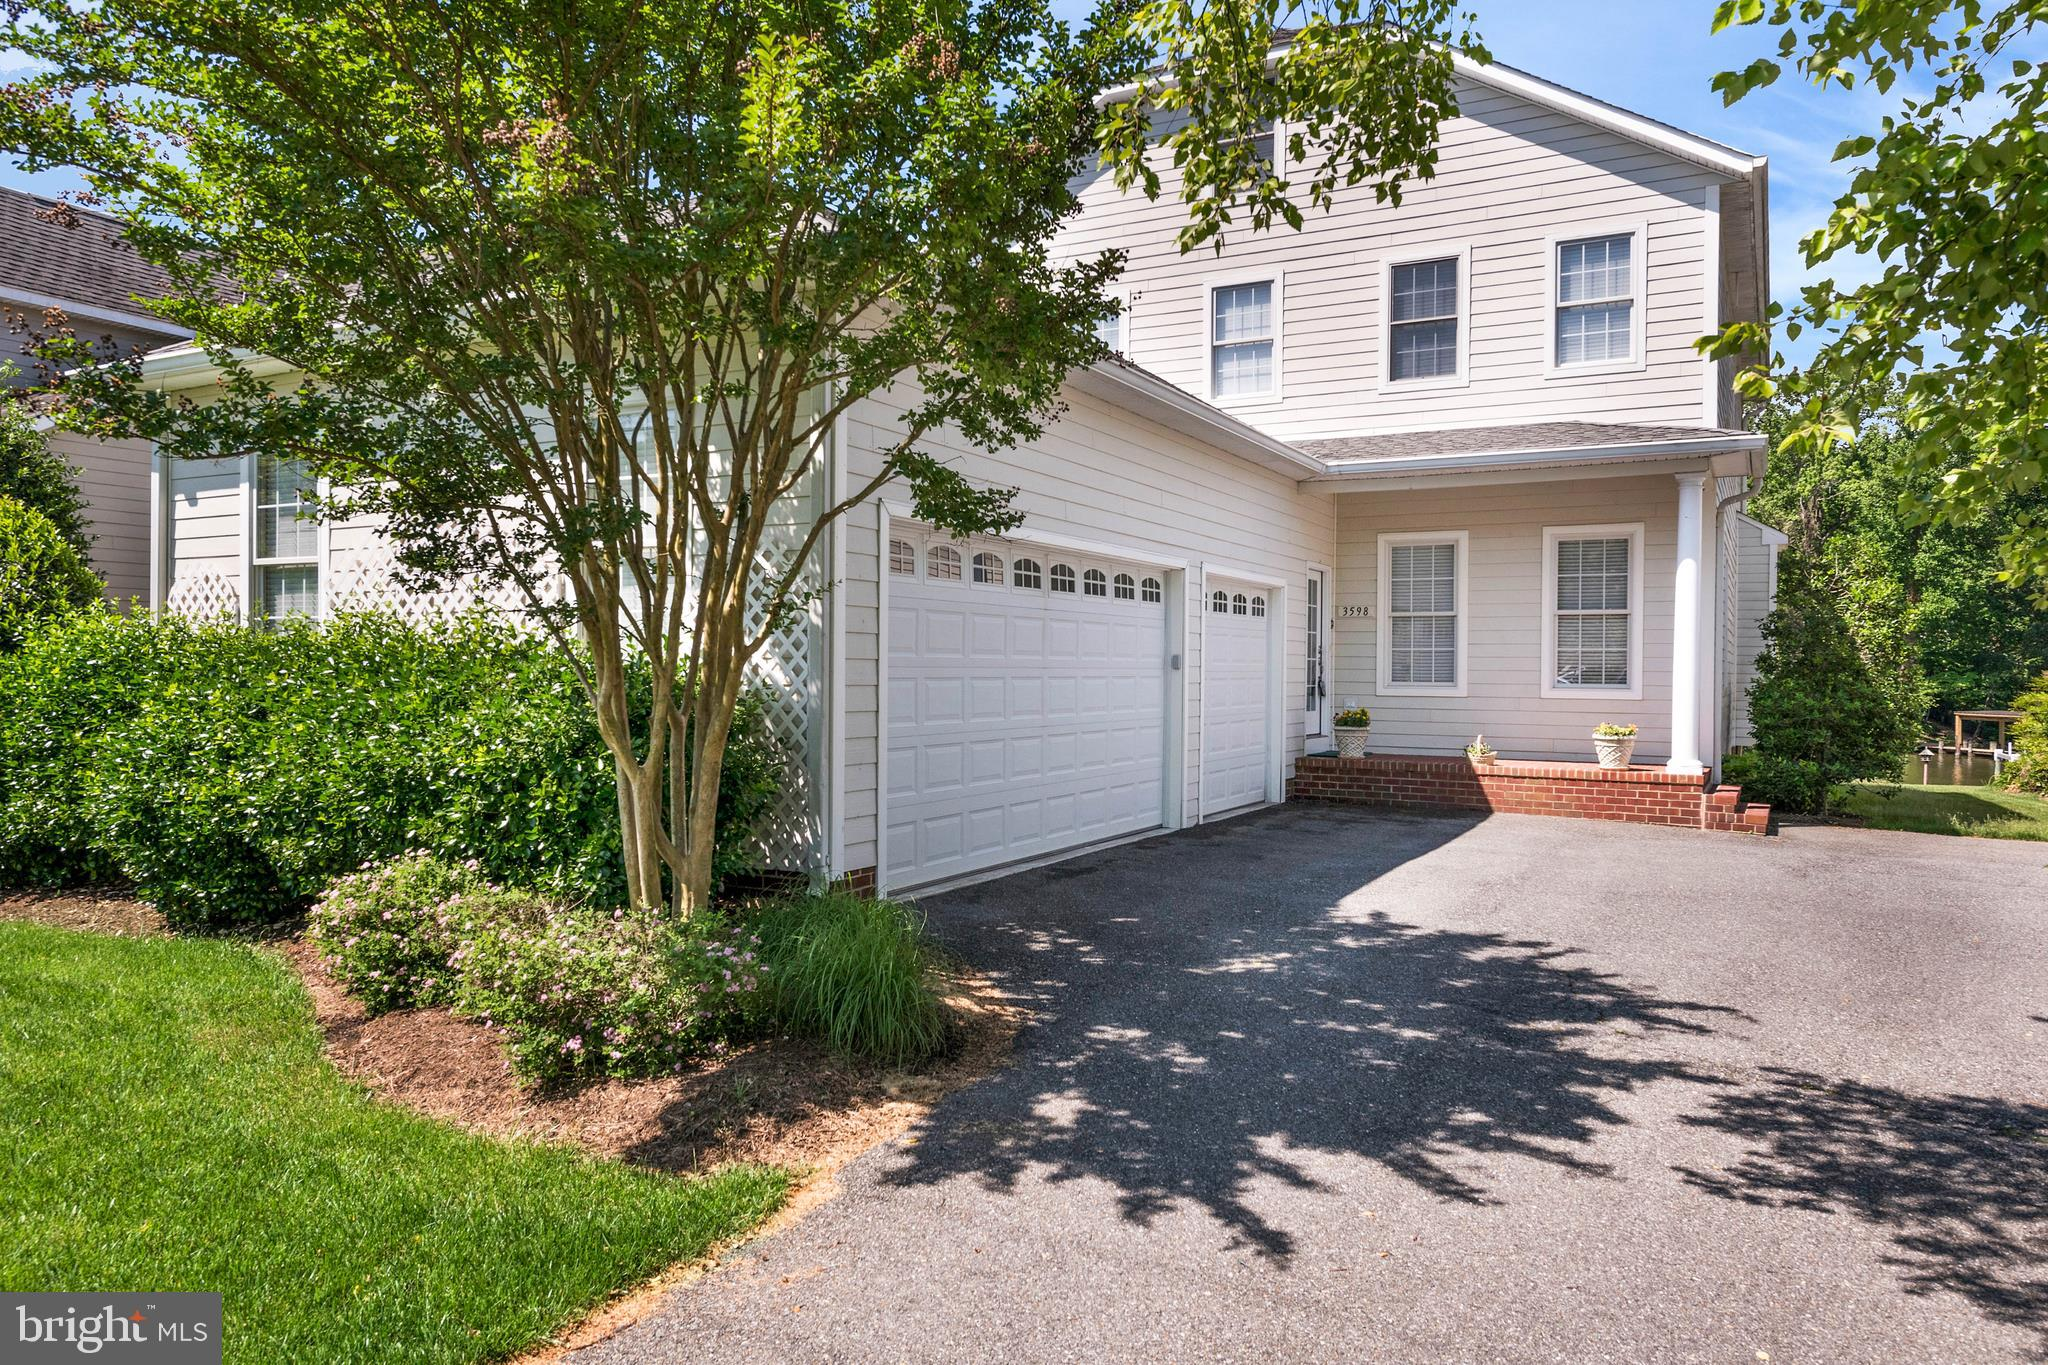 3598 S RIVER TERRACE, EDGEWATER, MD 21037